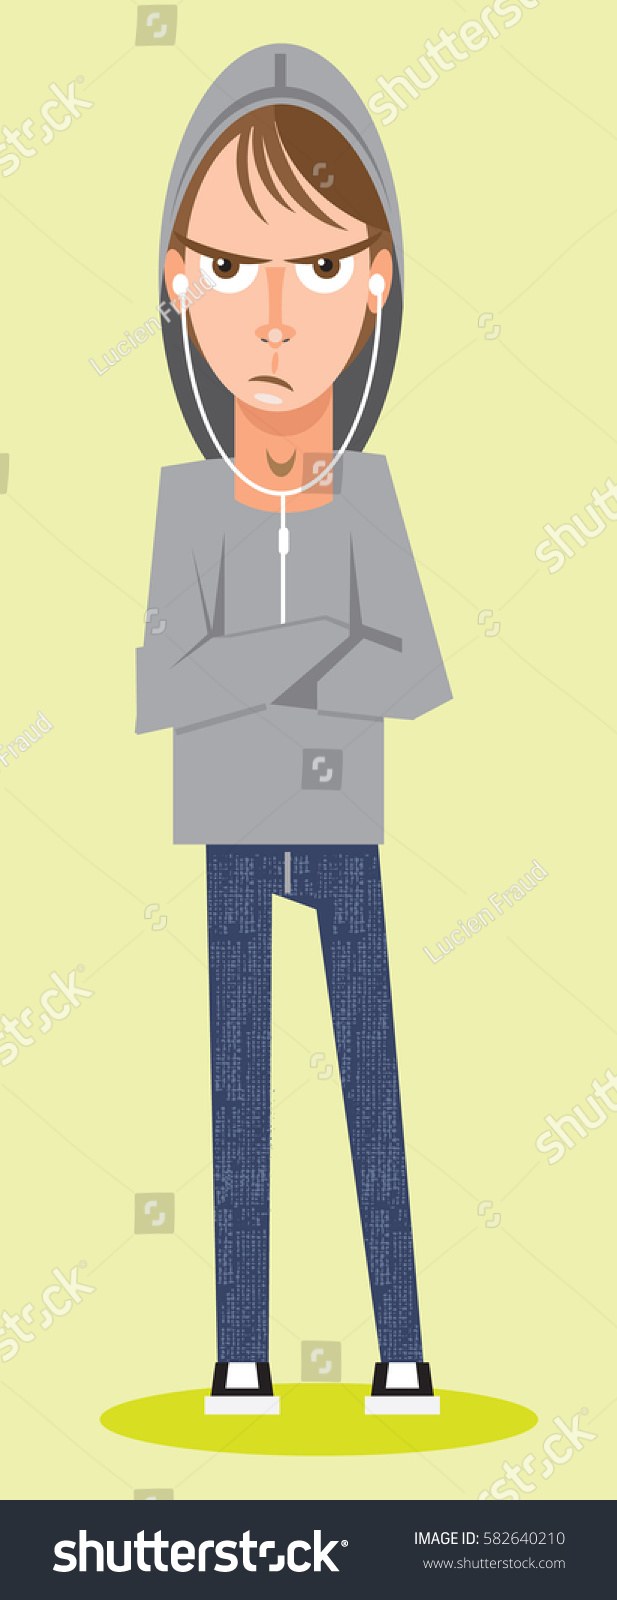 portrait moody rebellious teenage boy stock vector (royalty free) 582640210  shutterstock